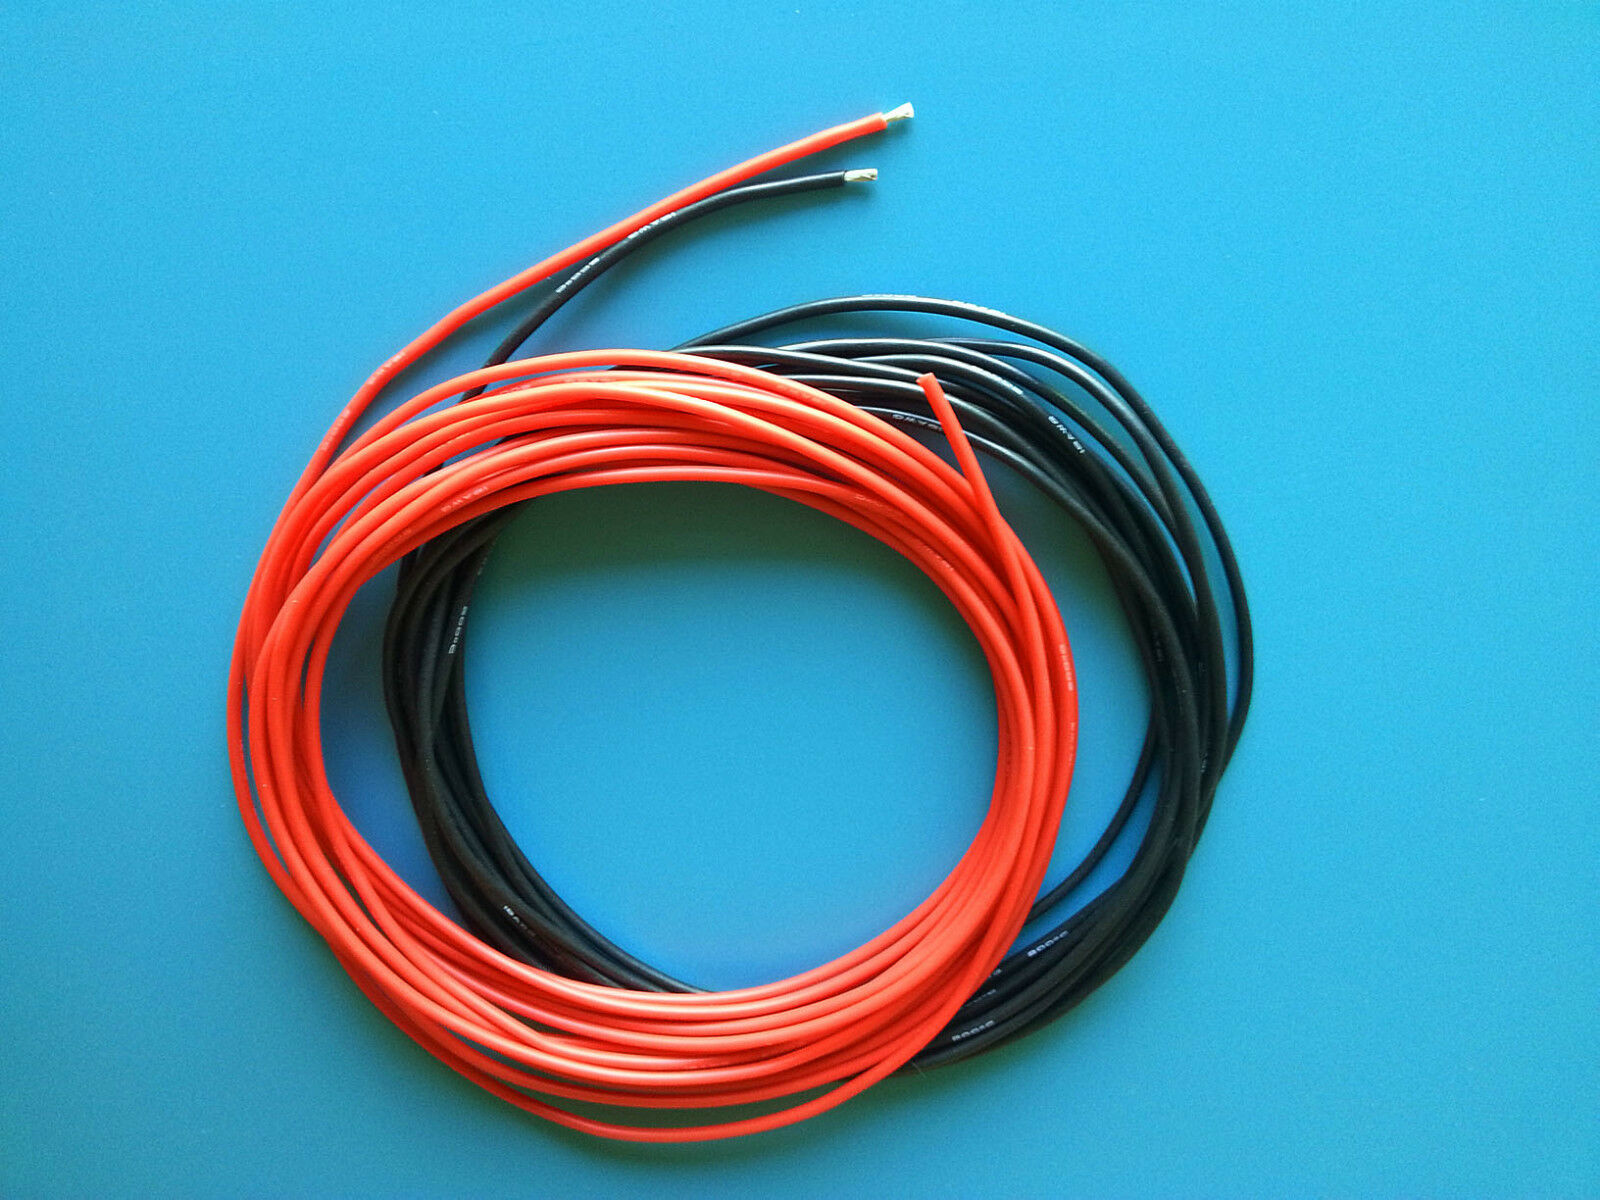 ONE PAIR OF 18 AWG / 18 Gauge Silicone Wires Silicon Cables (1m Red ...